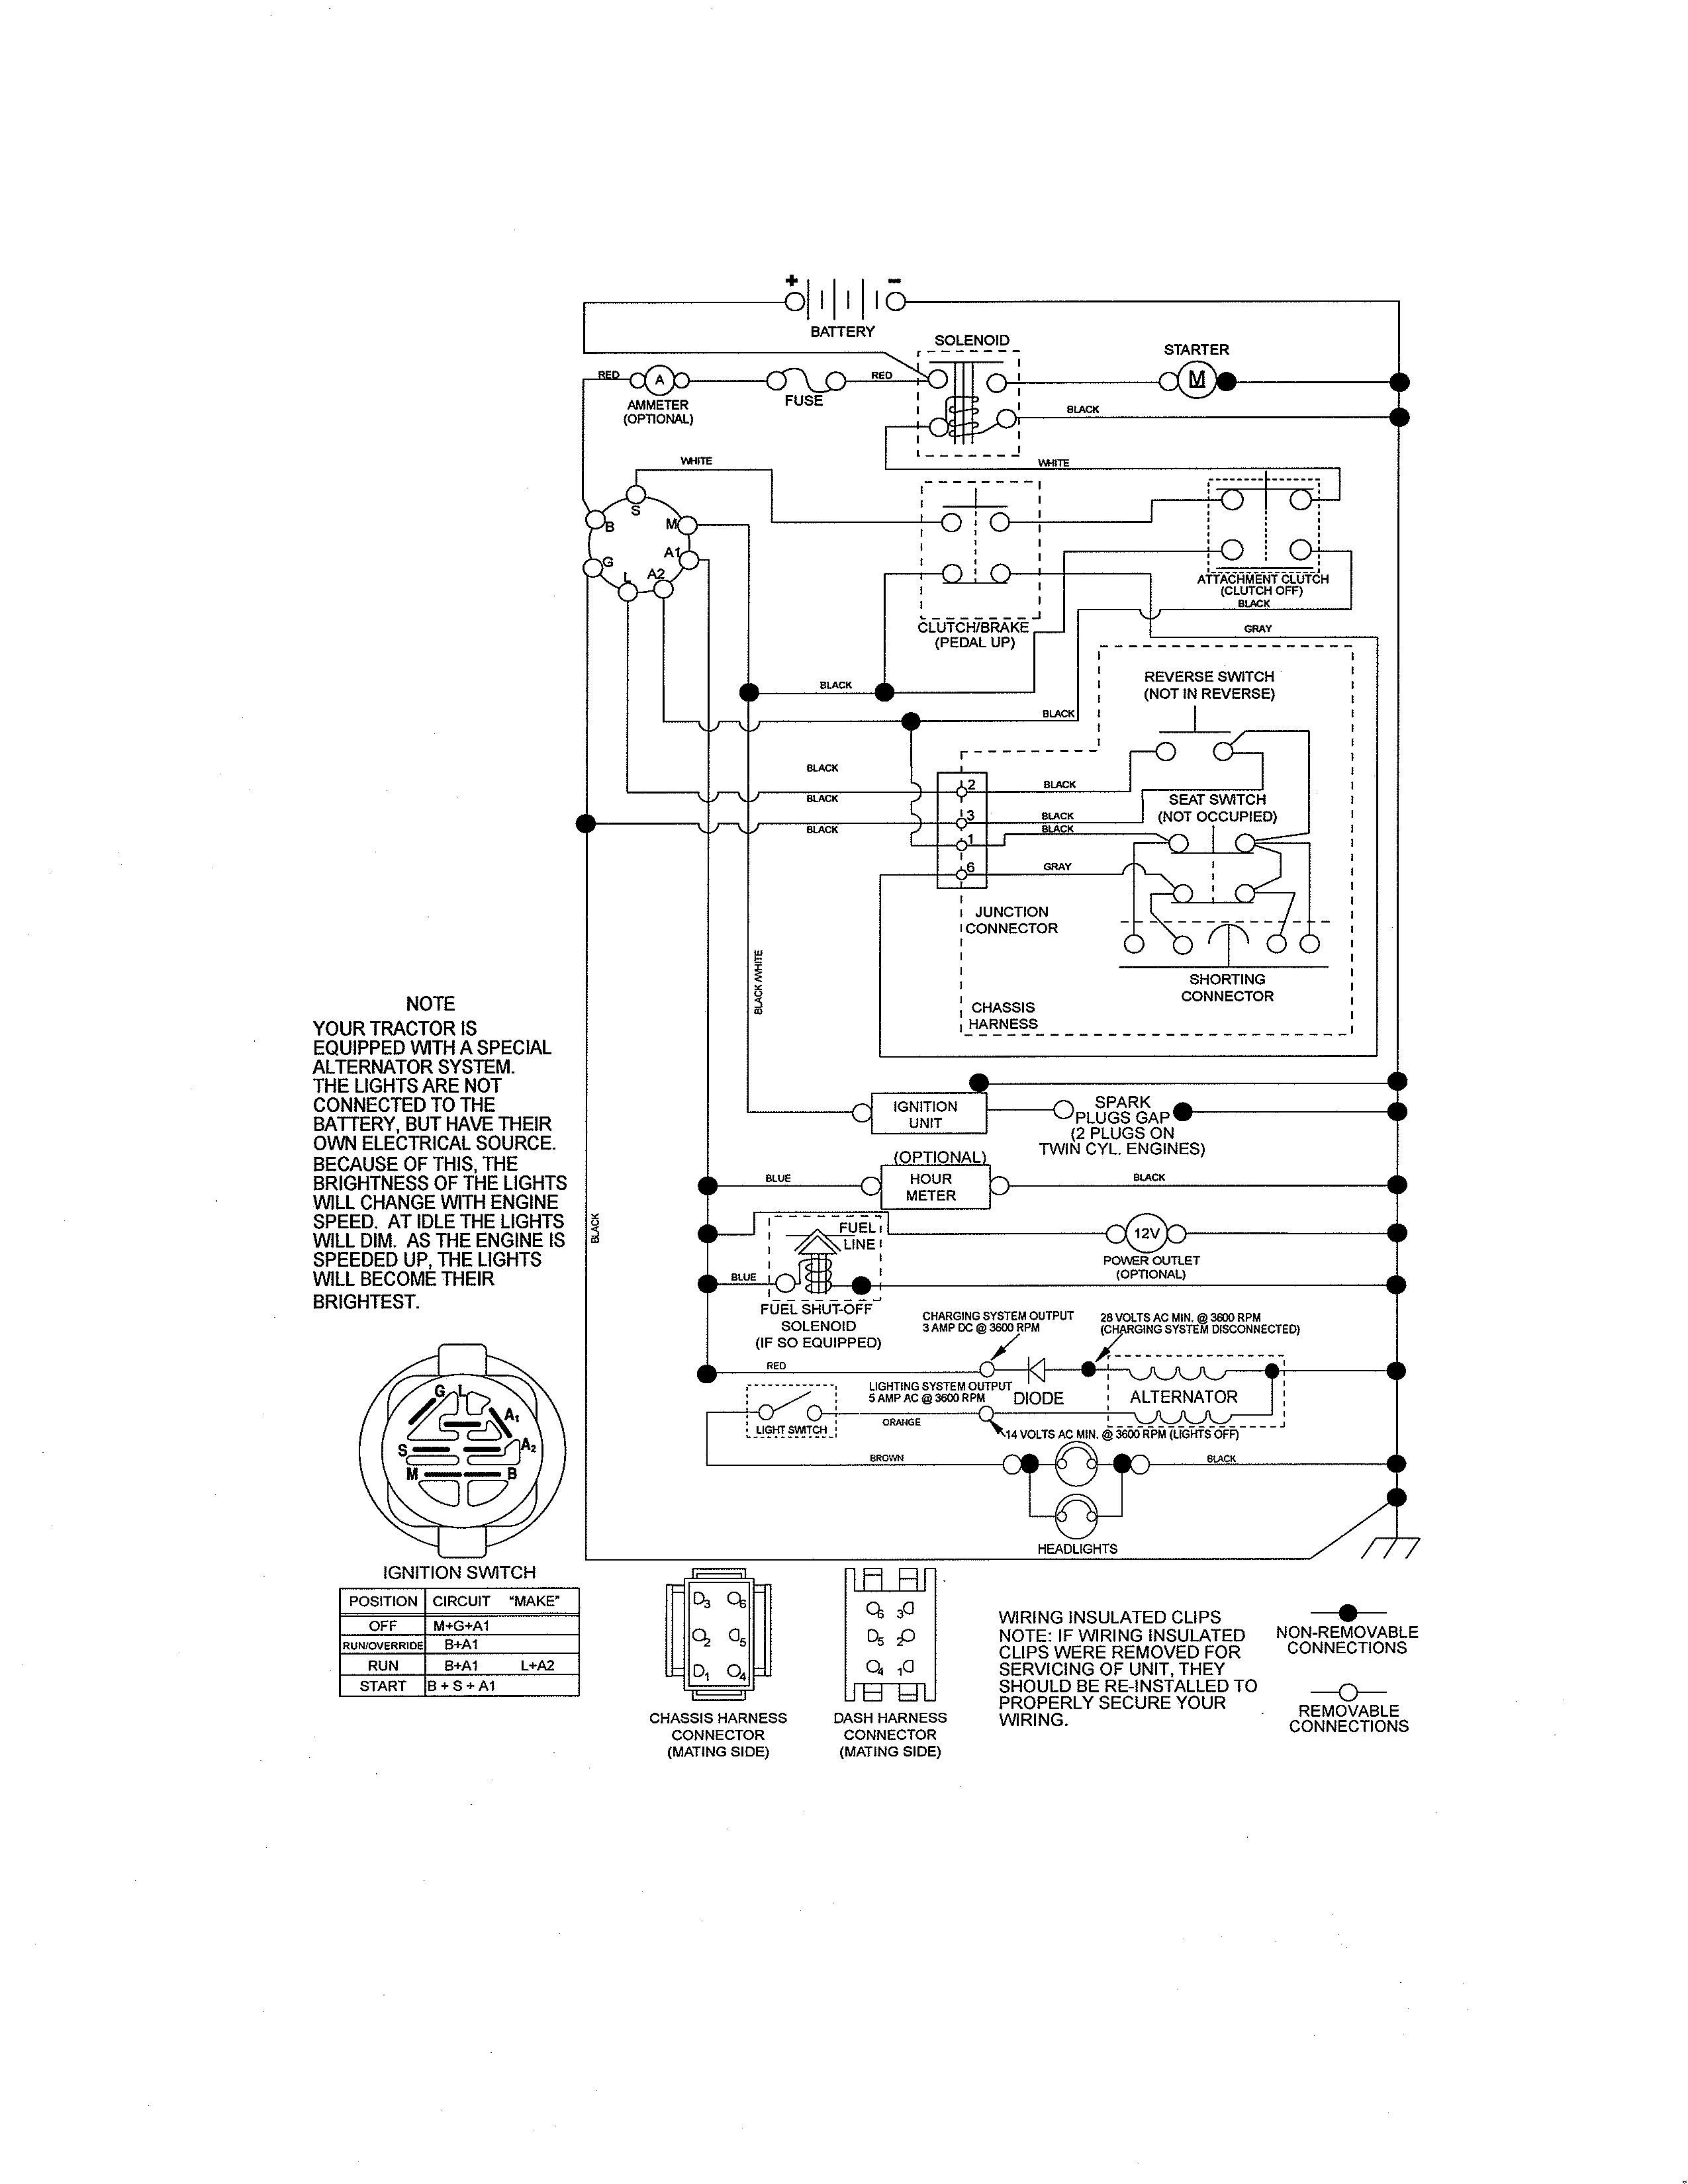 Craftsman Gt5000 Wiring Diagram from static-assets.imageservice.cloud